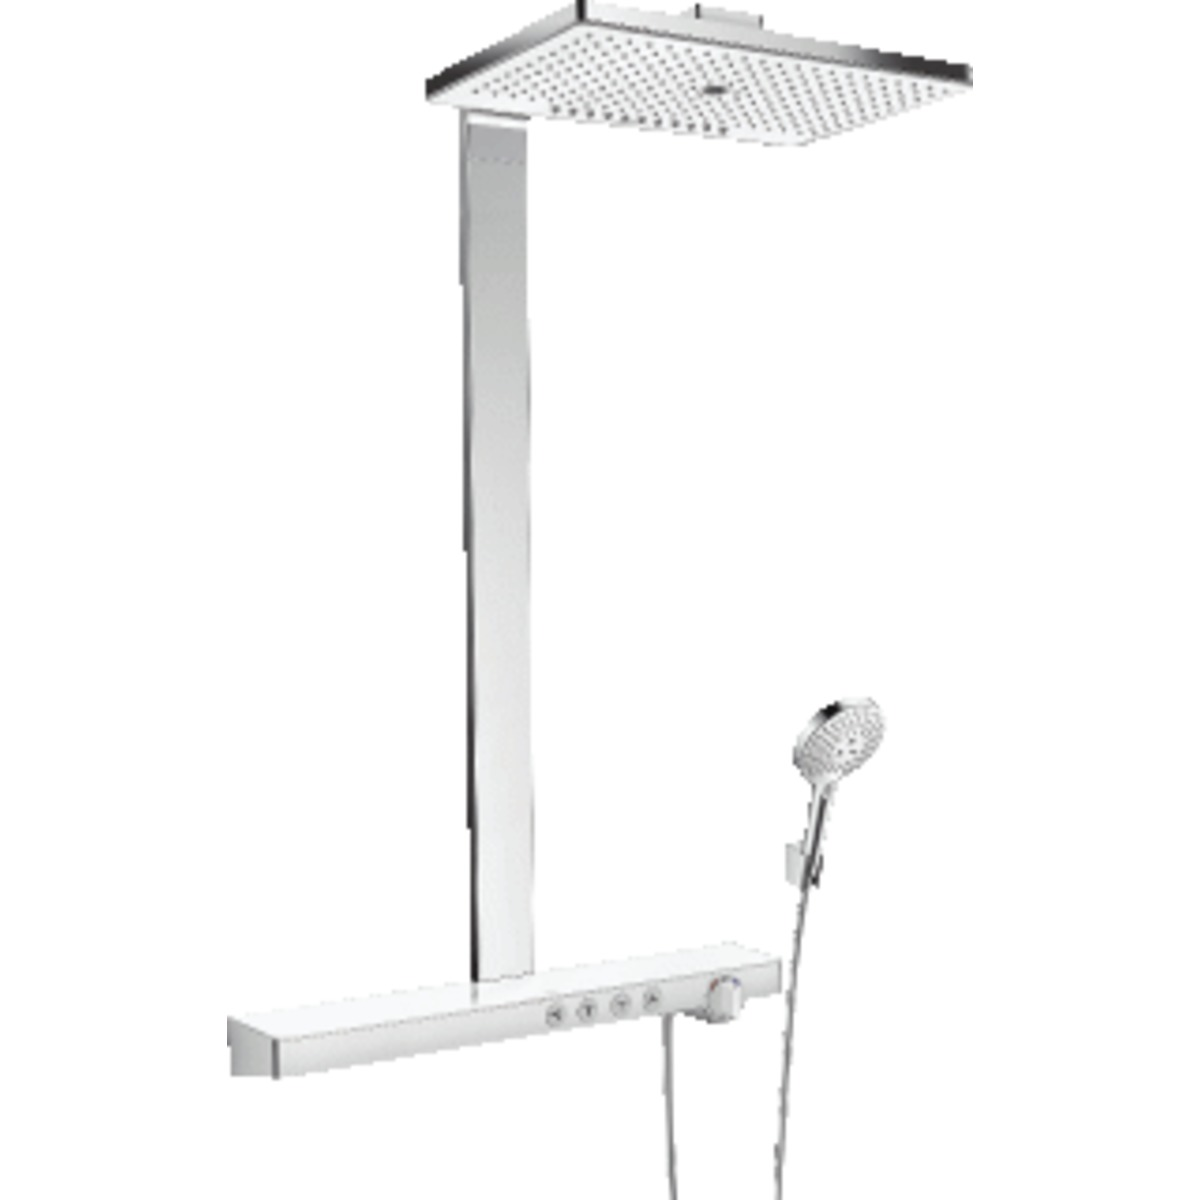 hansgrohe rainmaker select 420 2jet showerpipe met showertablet select 700 opbouw douchekraan. Black Bedroom Furniture Sets. Home Design Ideas